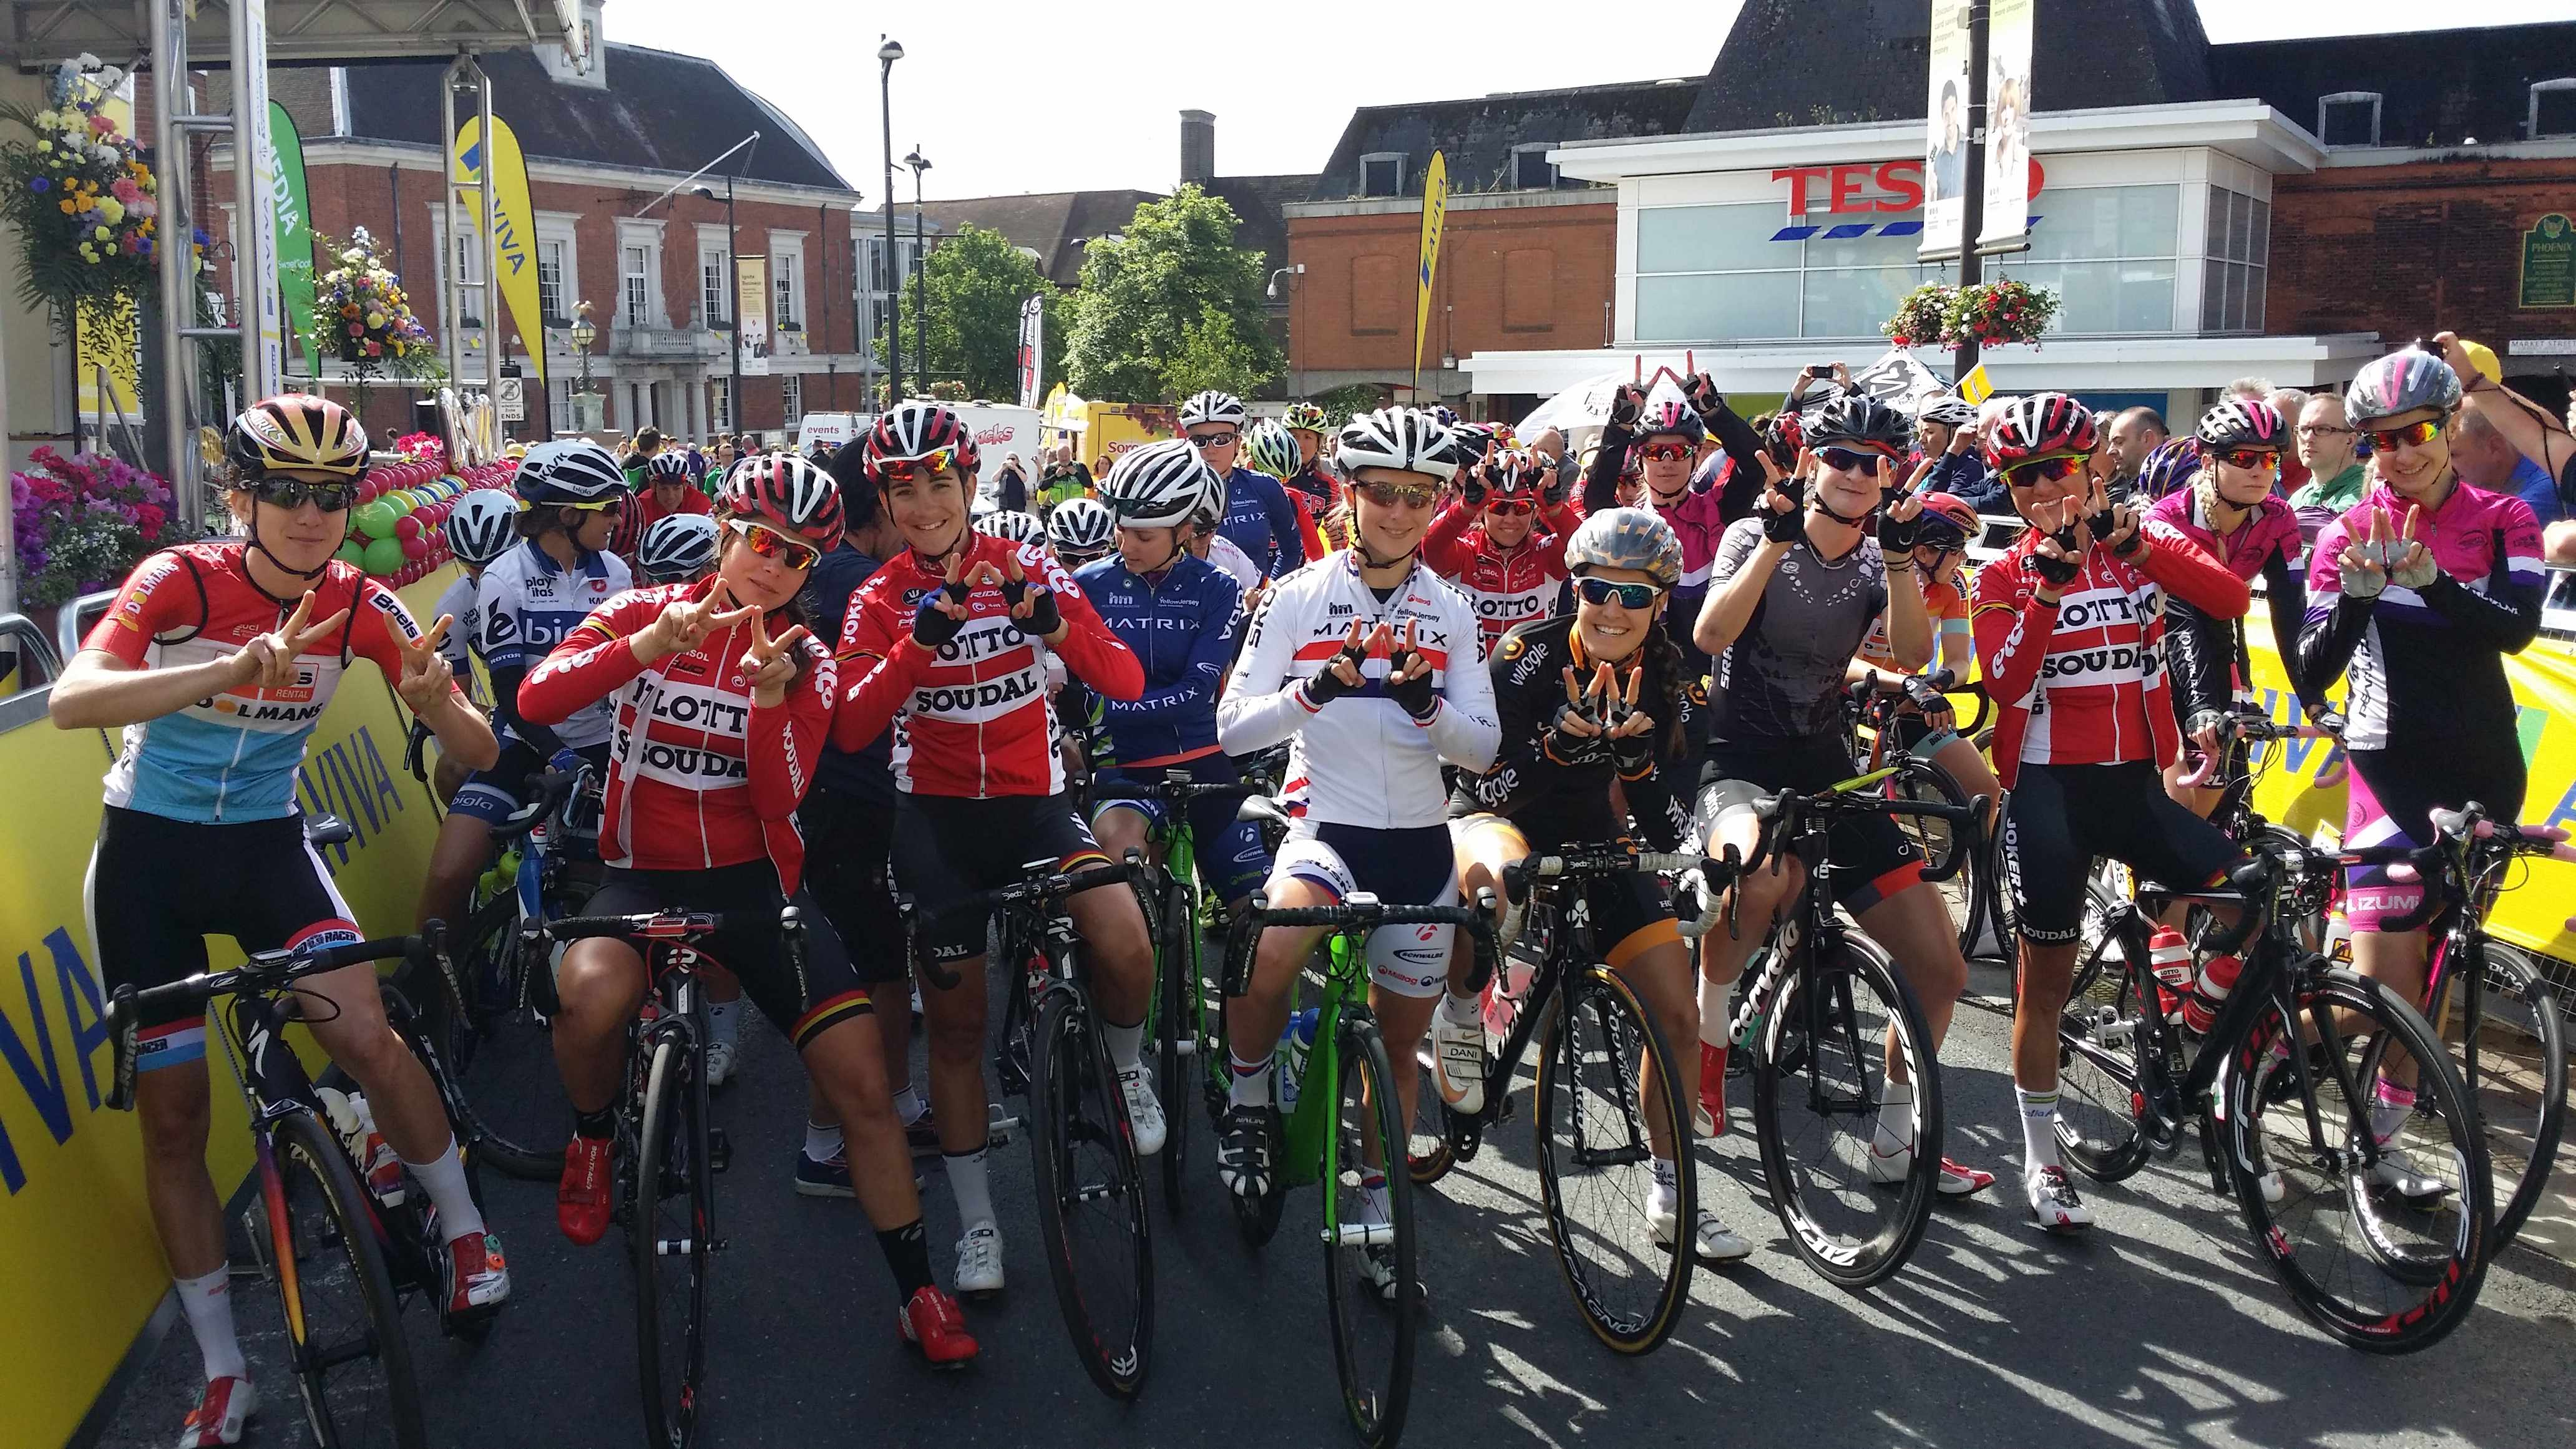 The Voxwomen Cycling Show will feature unprecedented behind-the-scenes footage from some of the greatest events in the 2015 women's race calendar